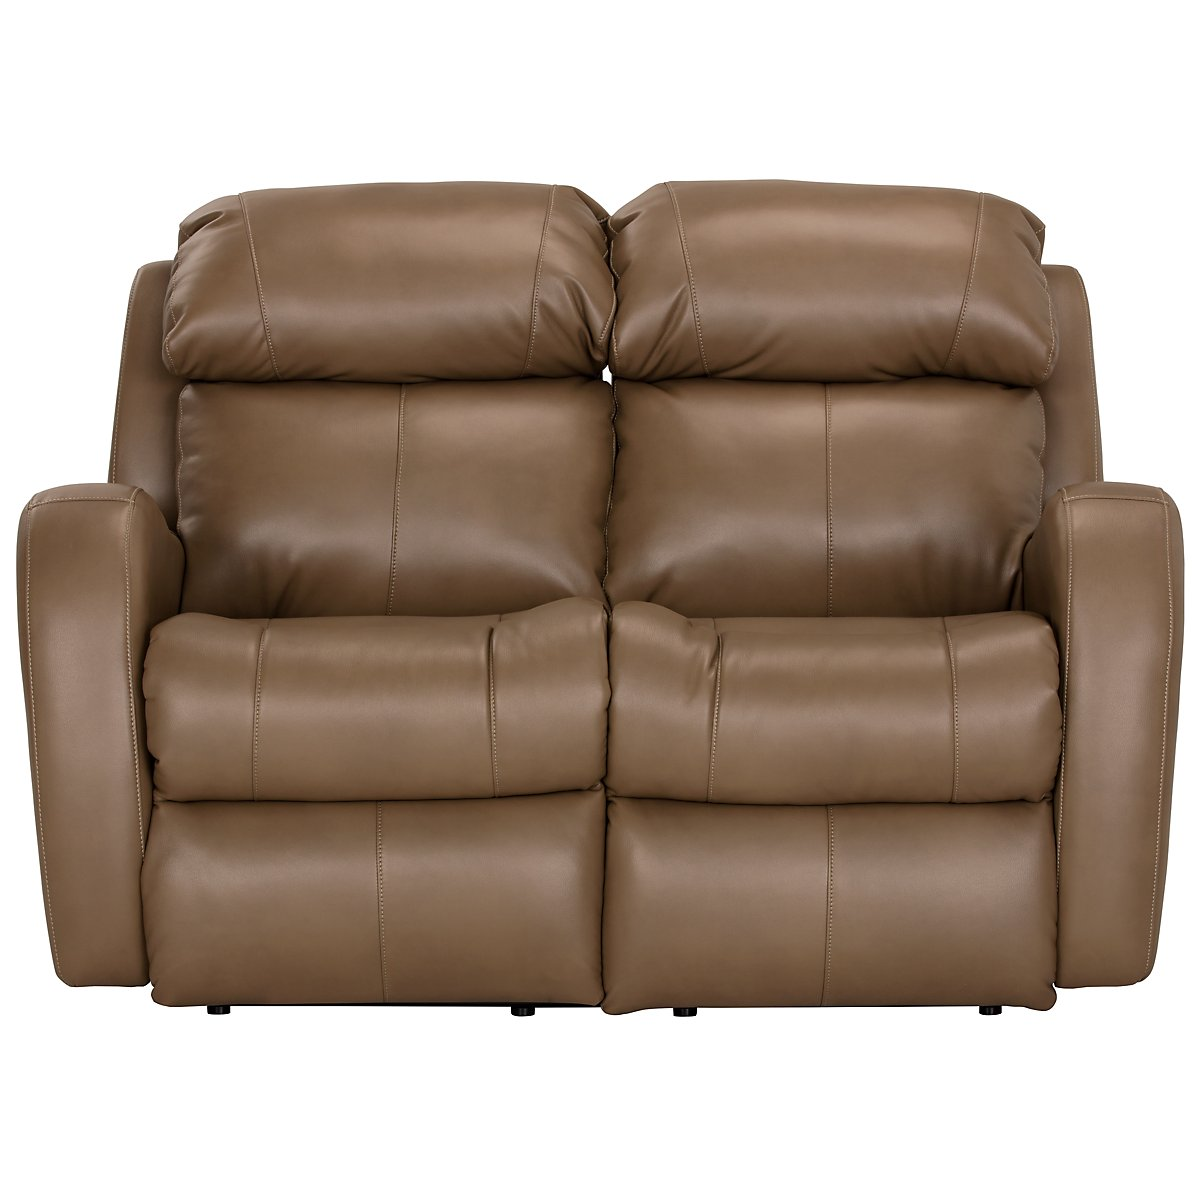 City Furniture: Finn Brown Microfiber Reclining Loveseat